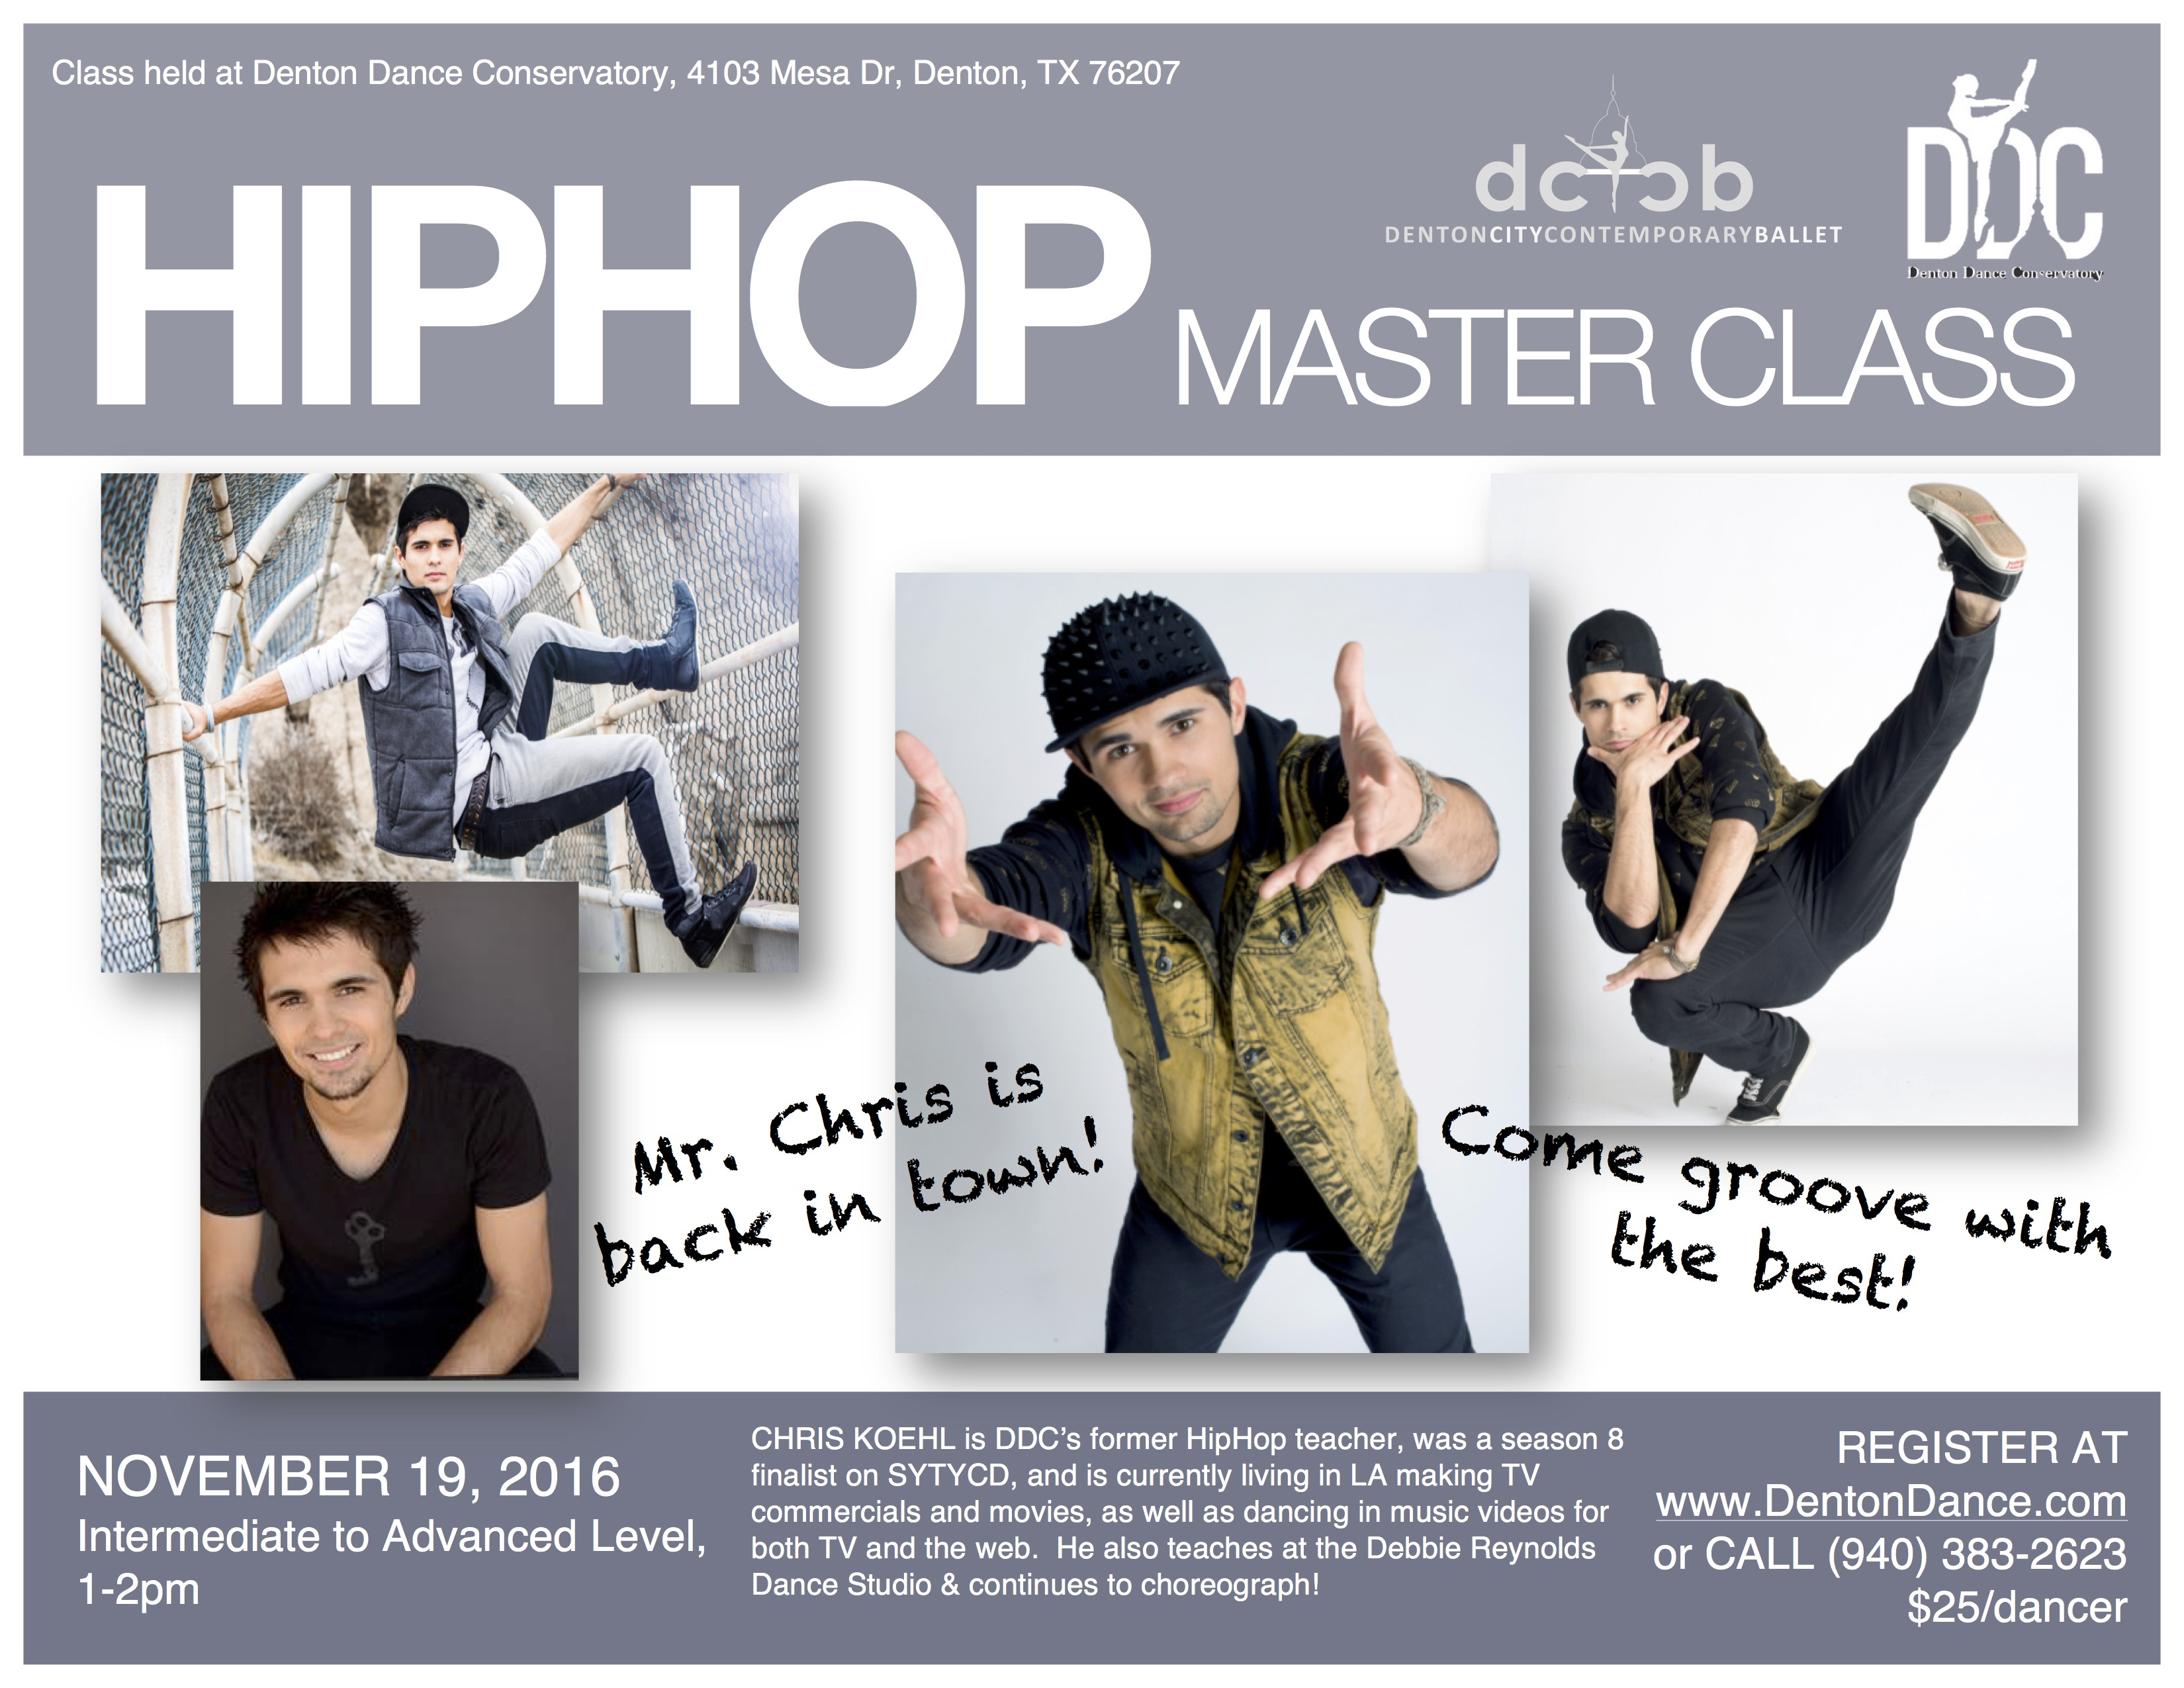 Chris Koehl Master Class Flyer 2016 Small